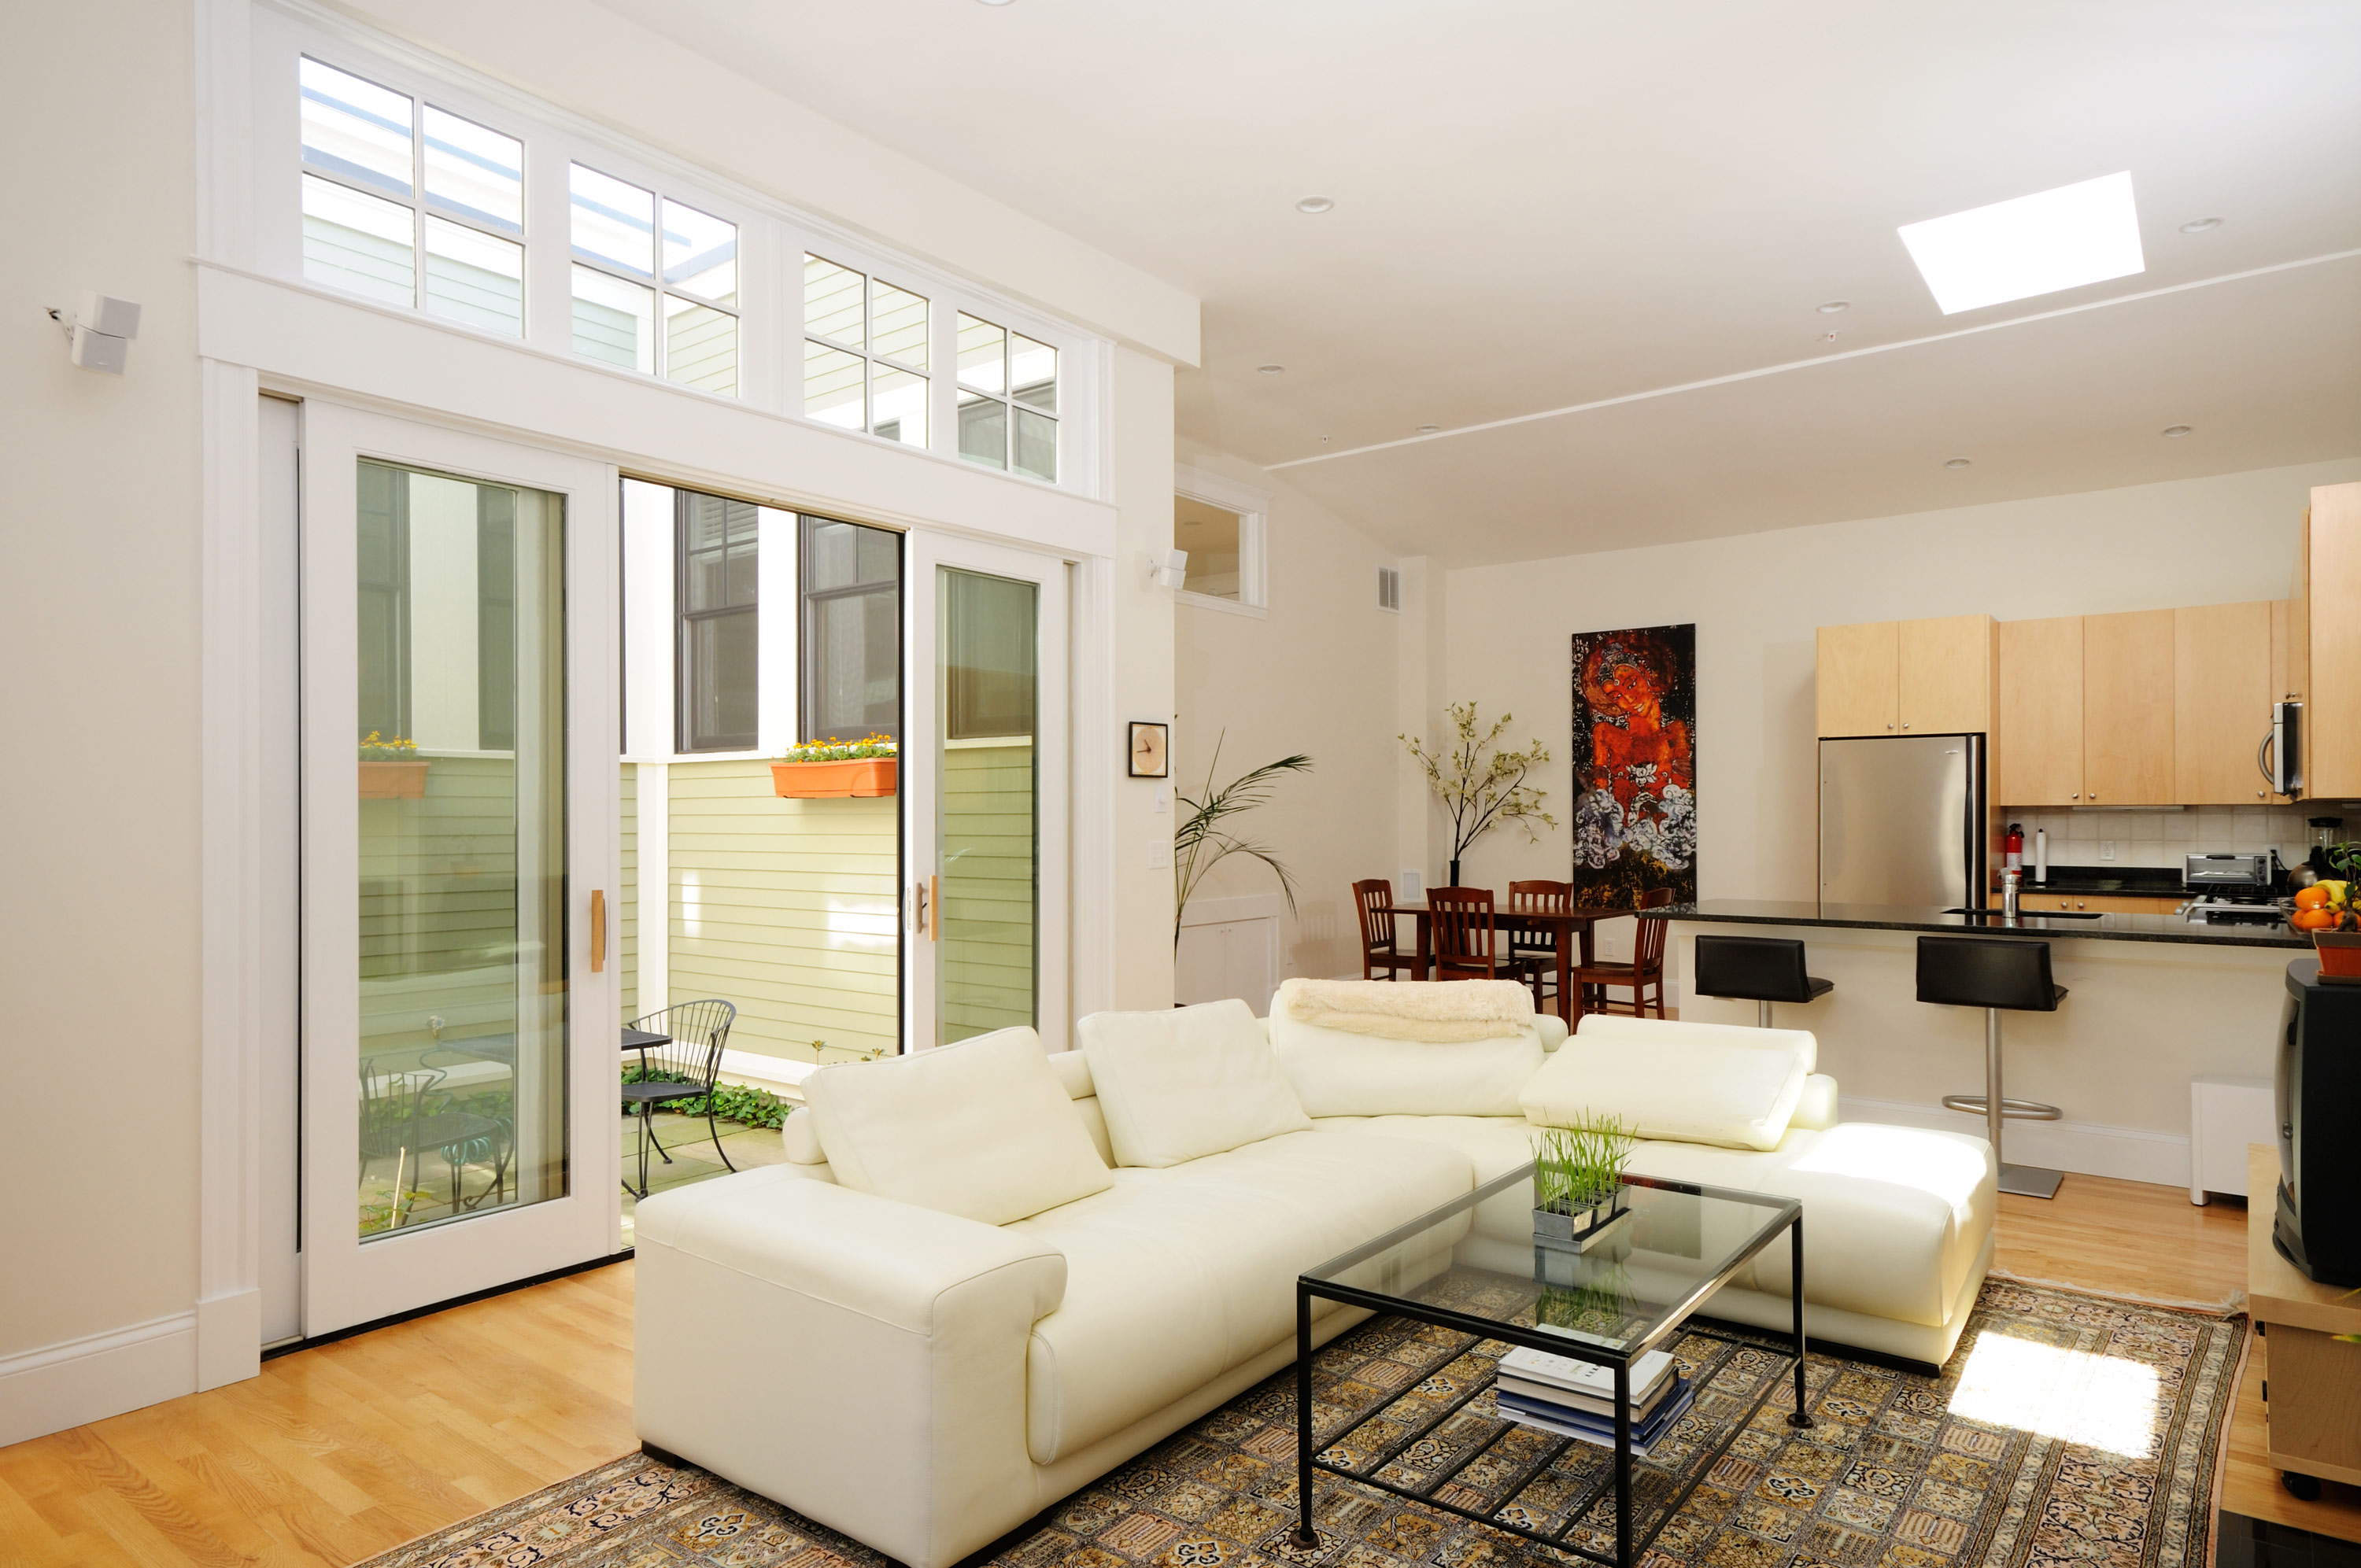 Spacious Living with 9' ceilings and 6' large patio sliders